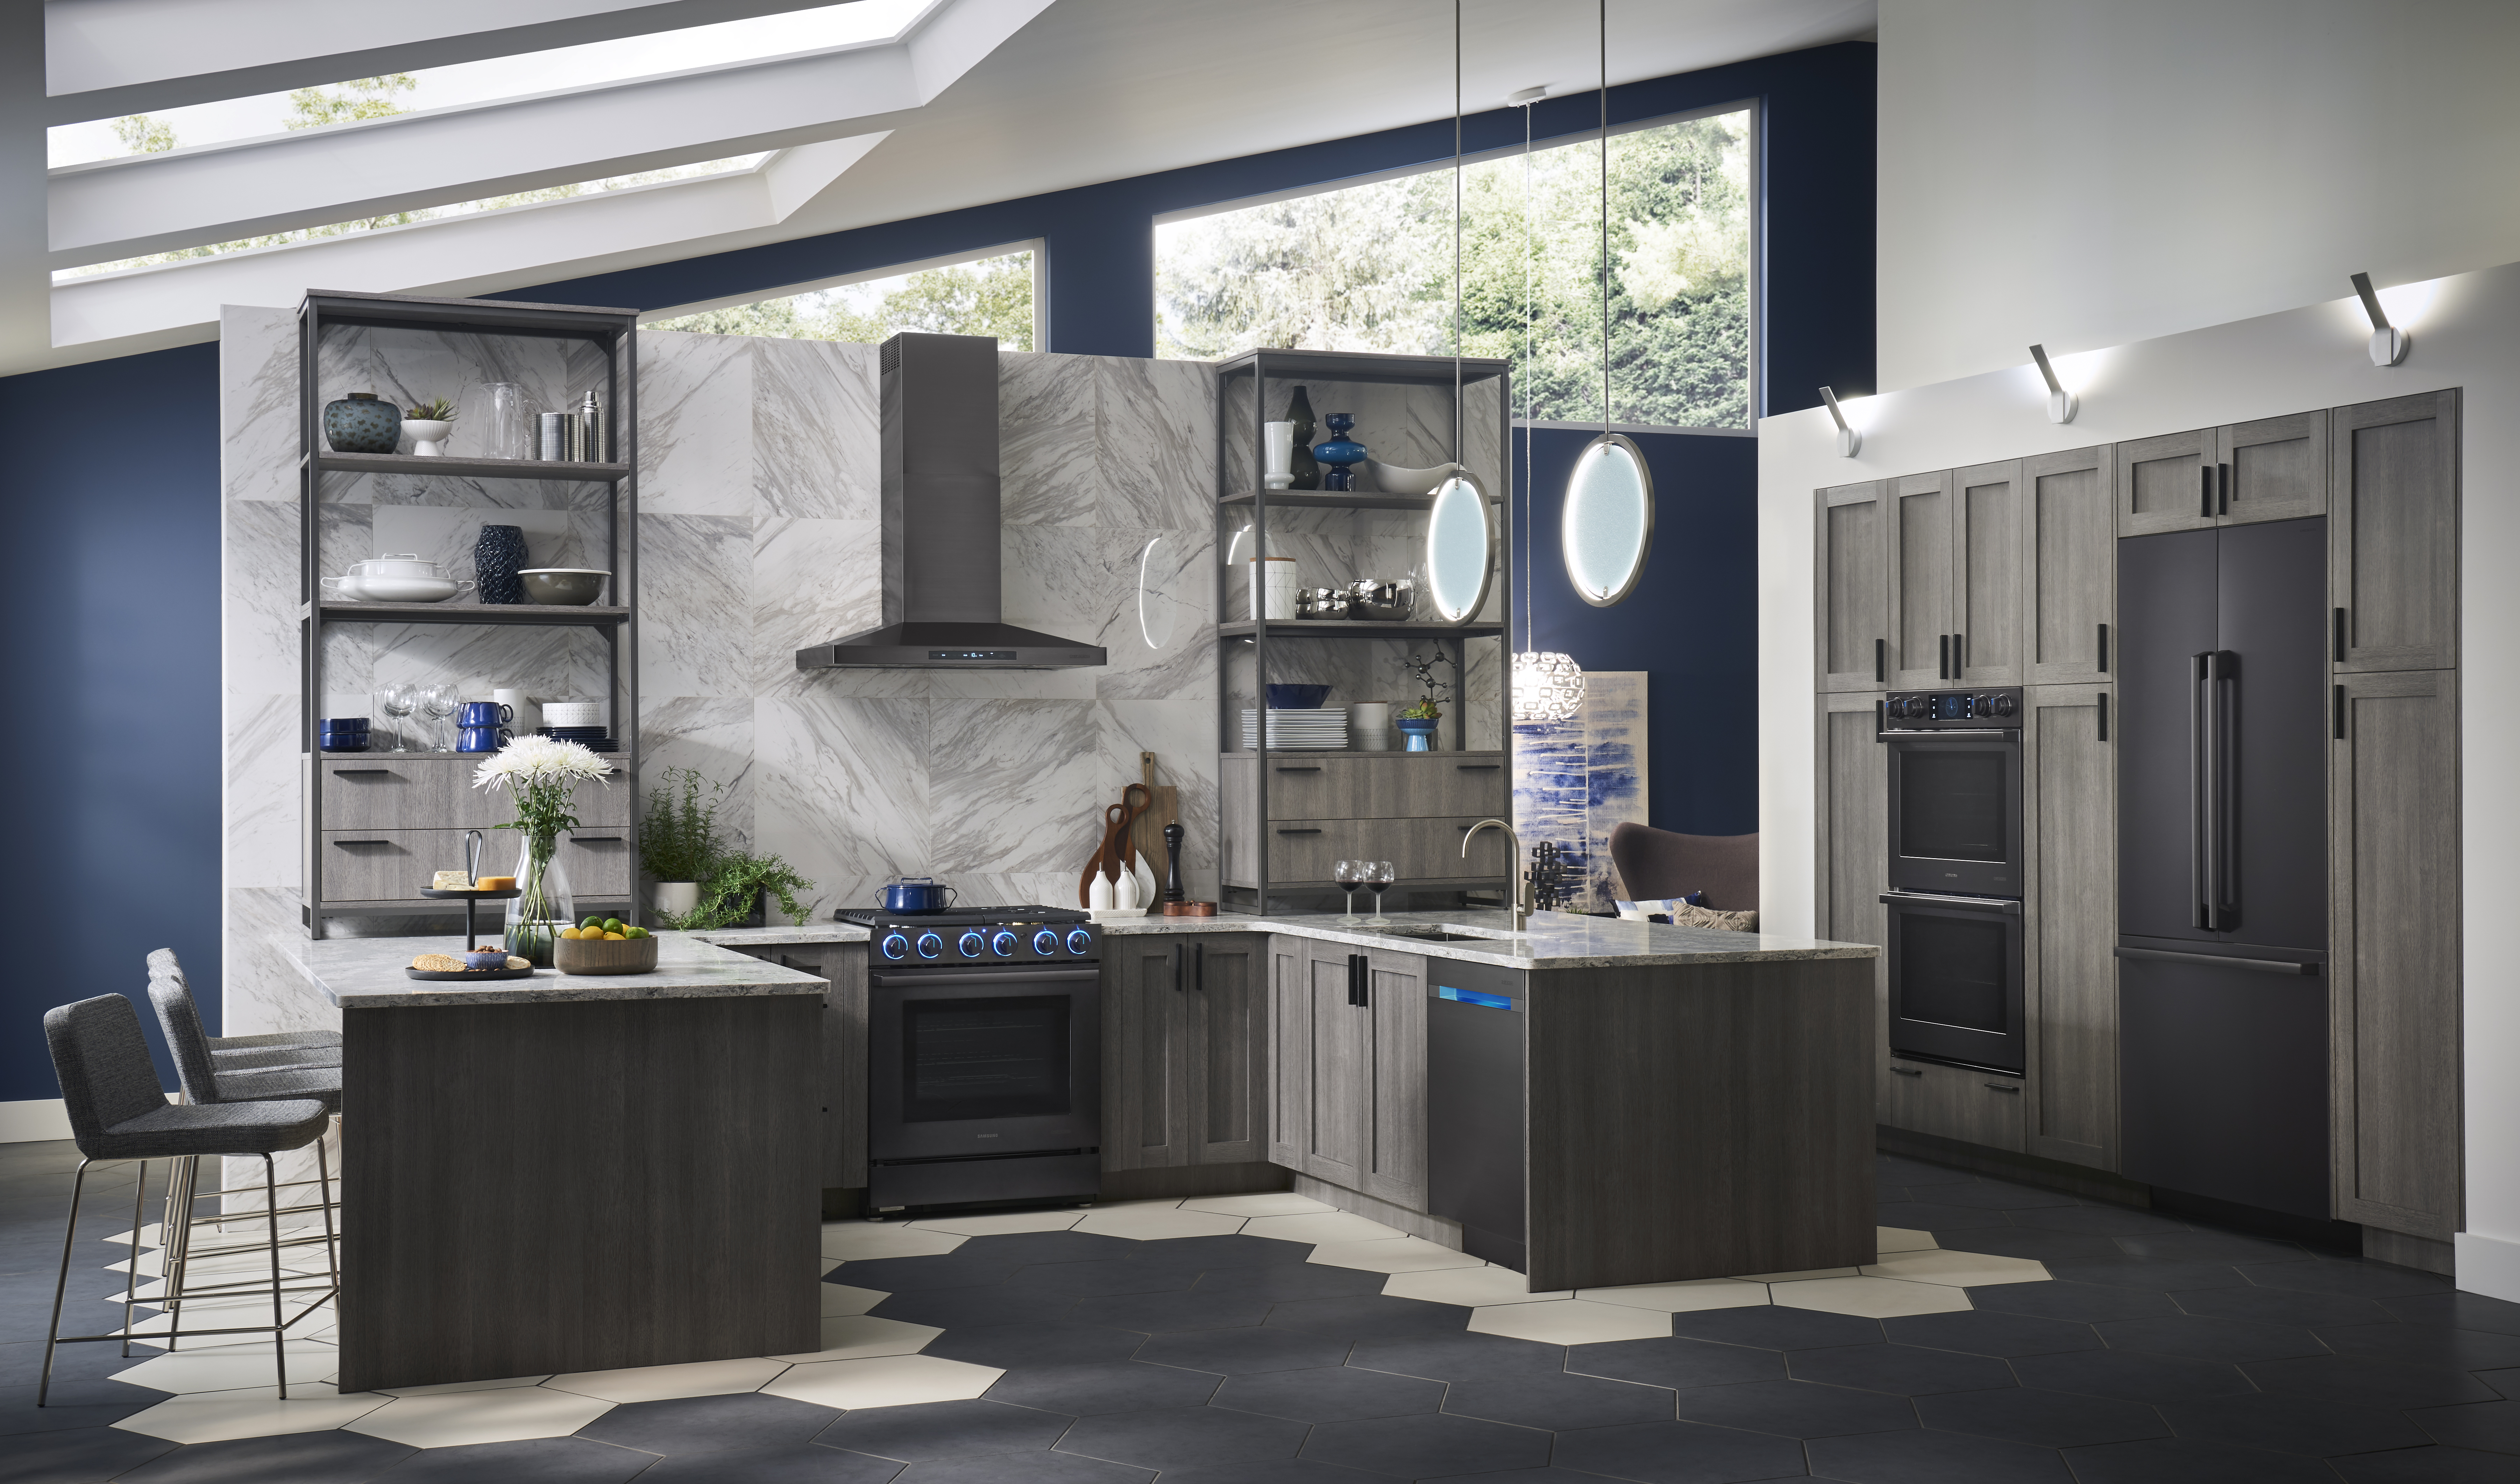 Samsung Celebrates the Launch of New Chef Collection Line of ...